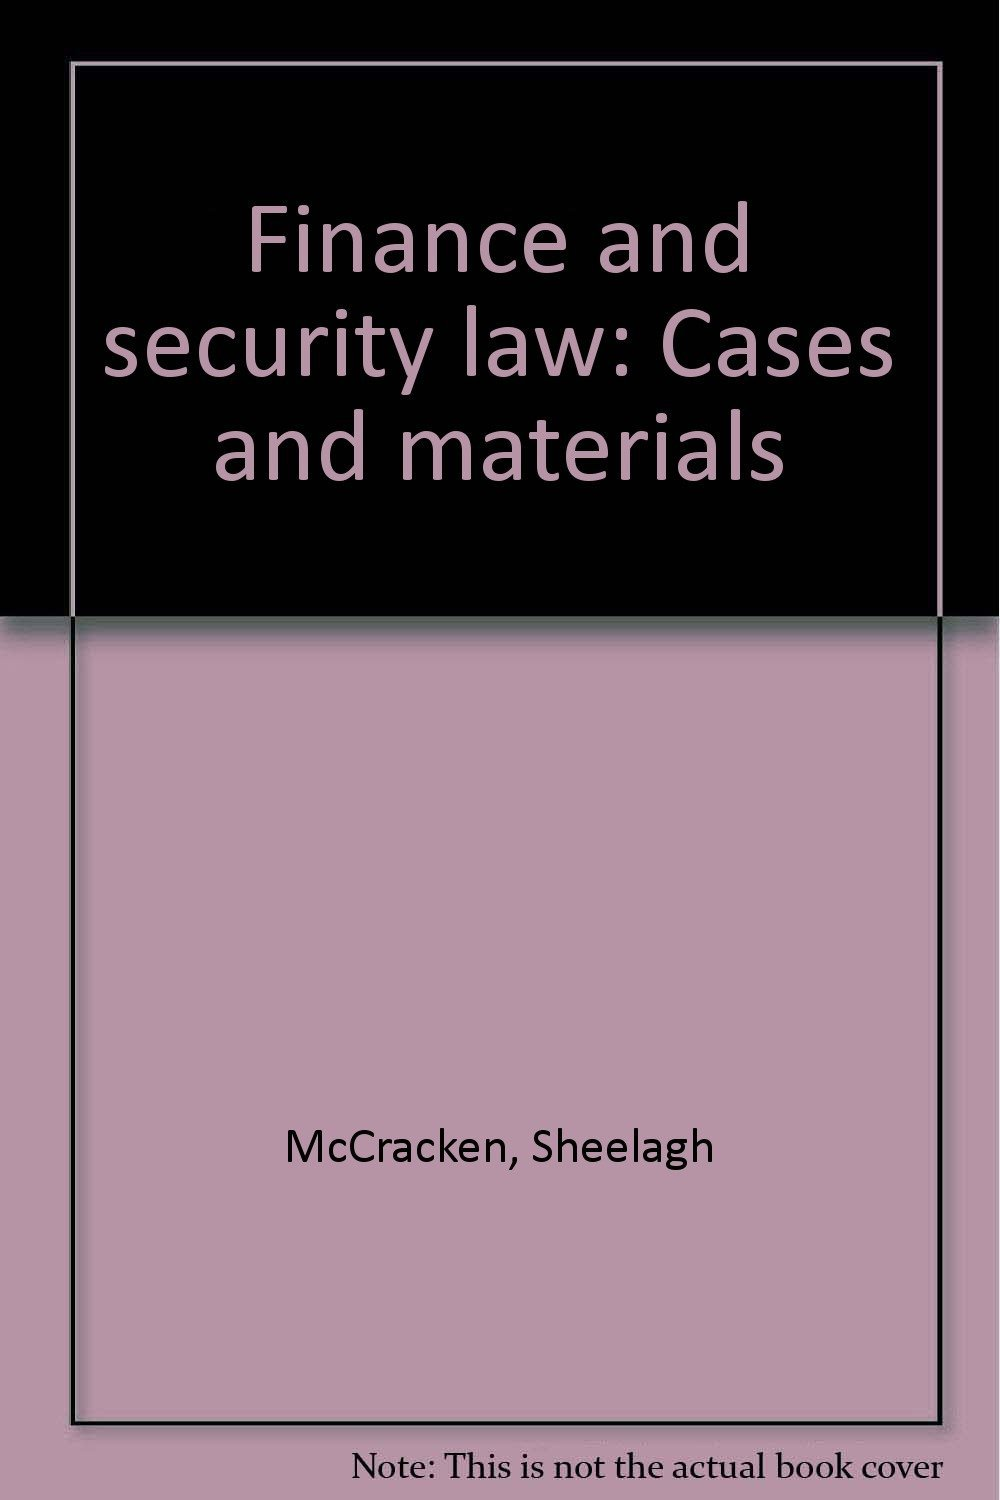 Finance and Security Law: Cases and Materials: Cases and Materials